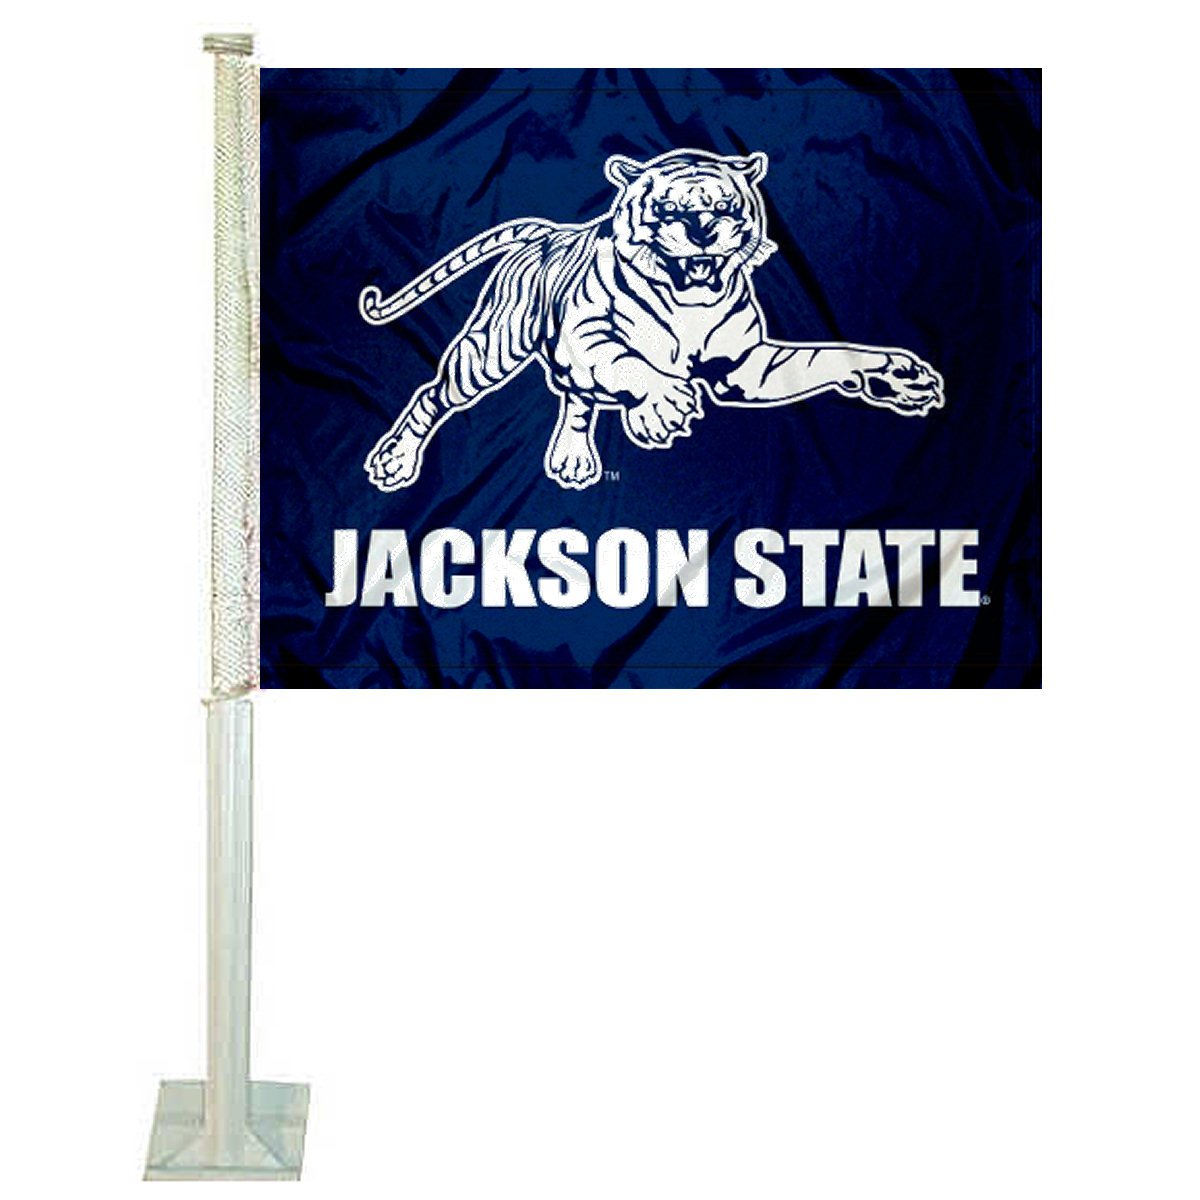 College Flags and Banners Co. Jackson State Tigers Car Flag